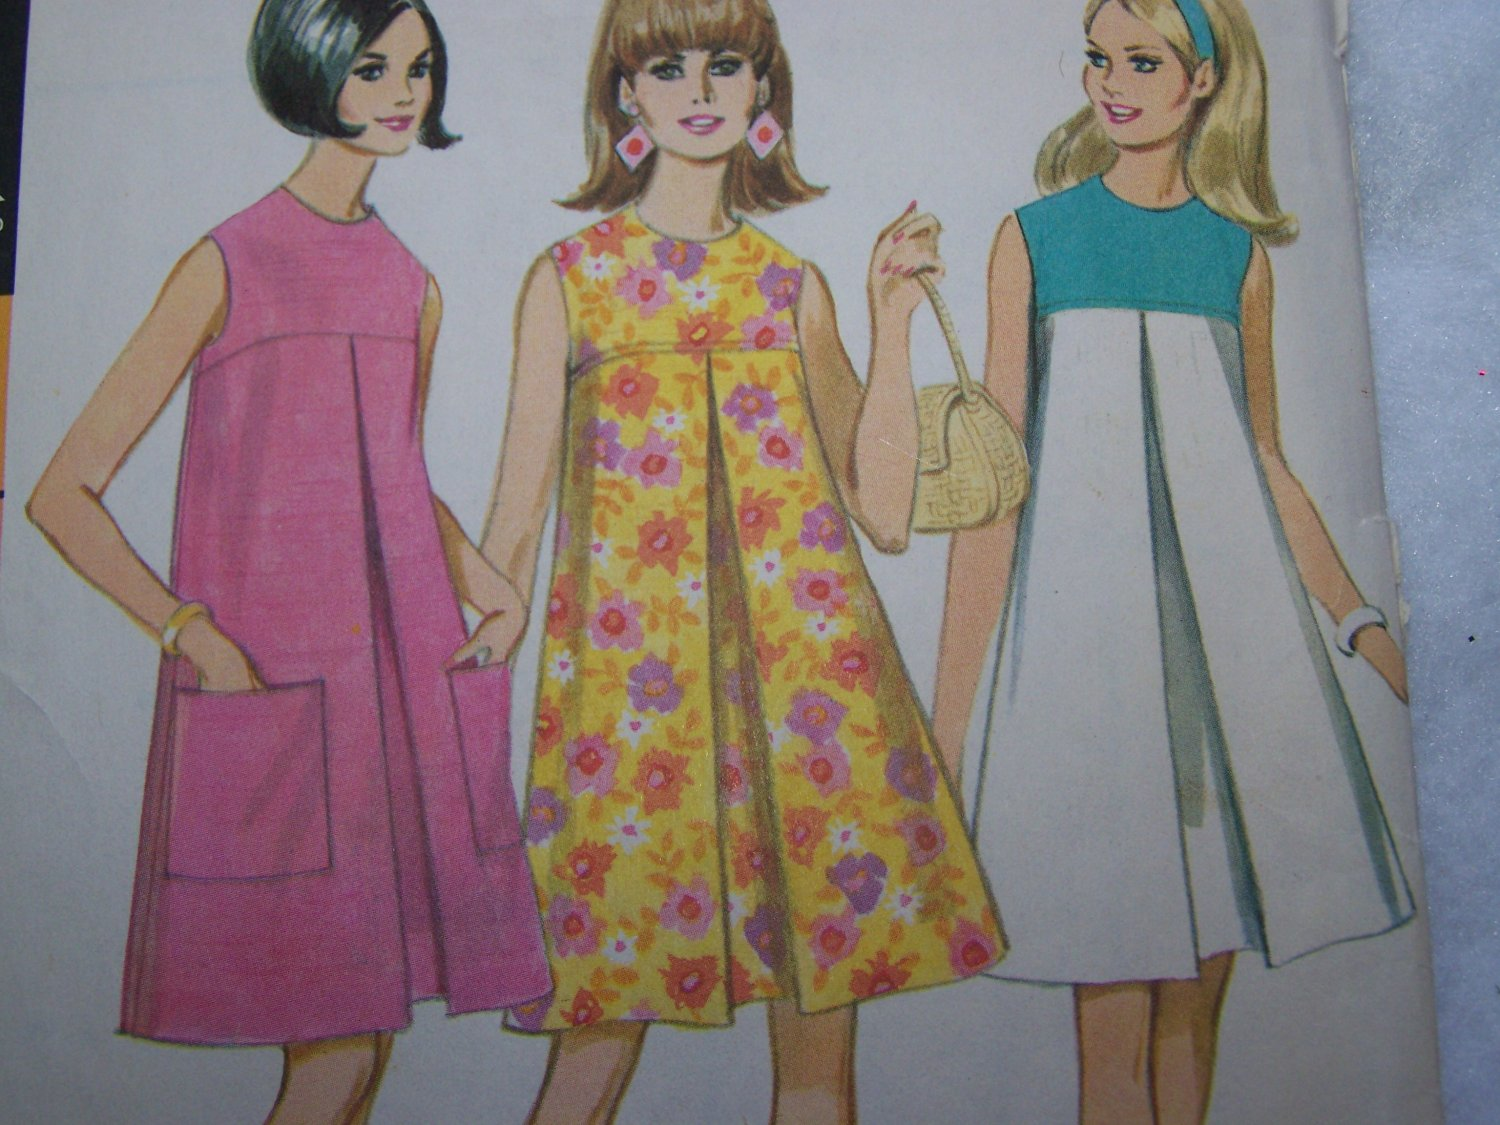 60s Vintage Sewing Pattern McCall's 8755 Misses XS S Inverted Pleat Tent Dress Size 10